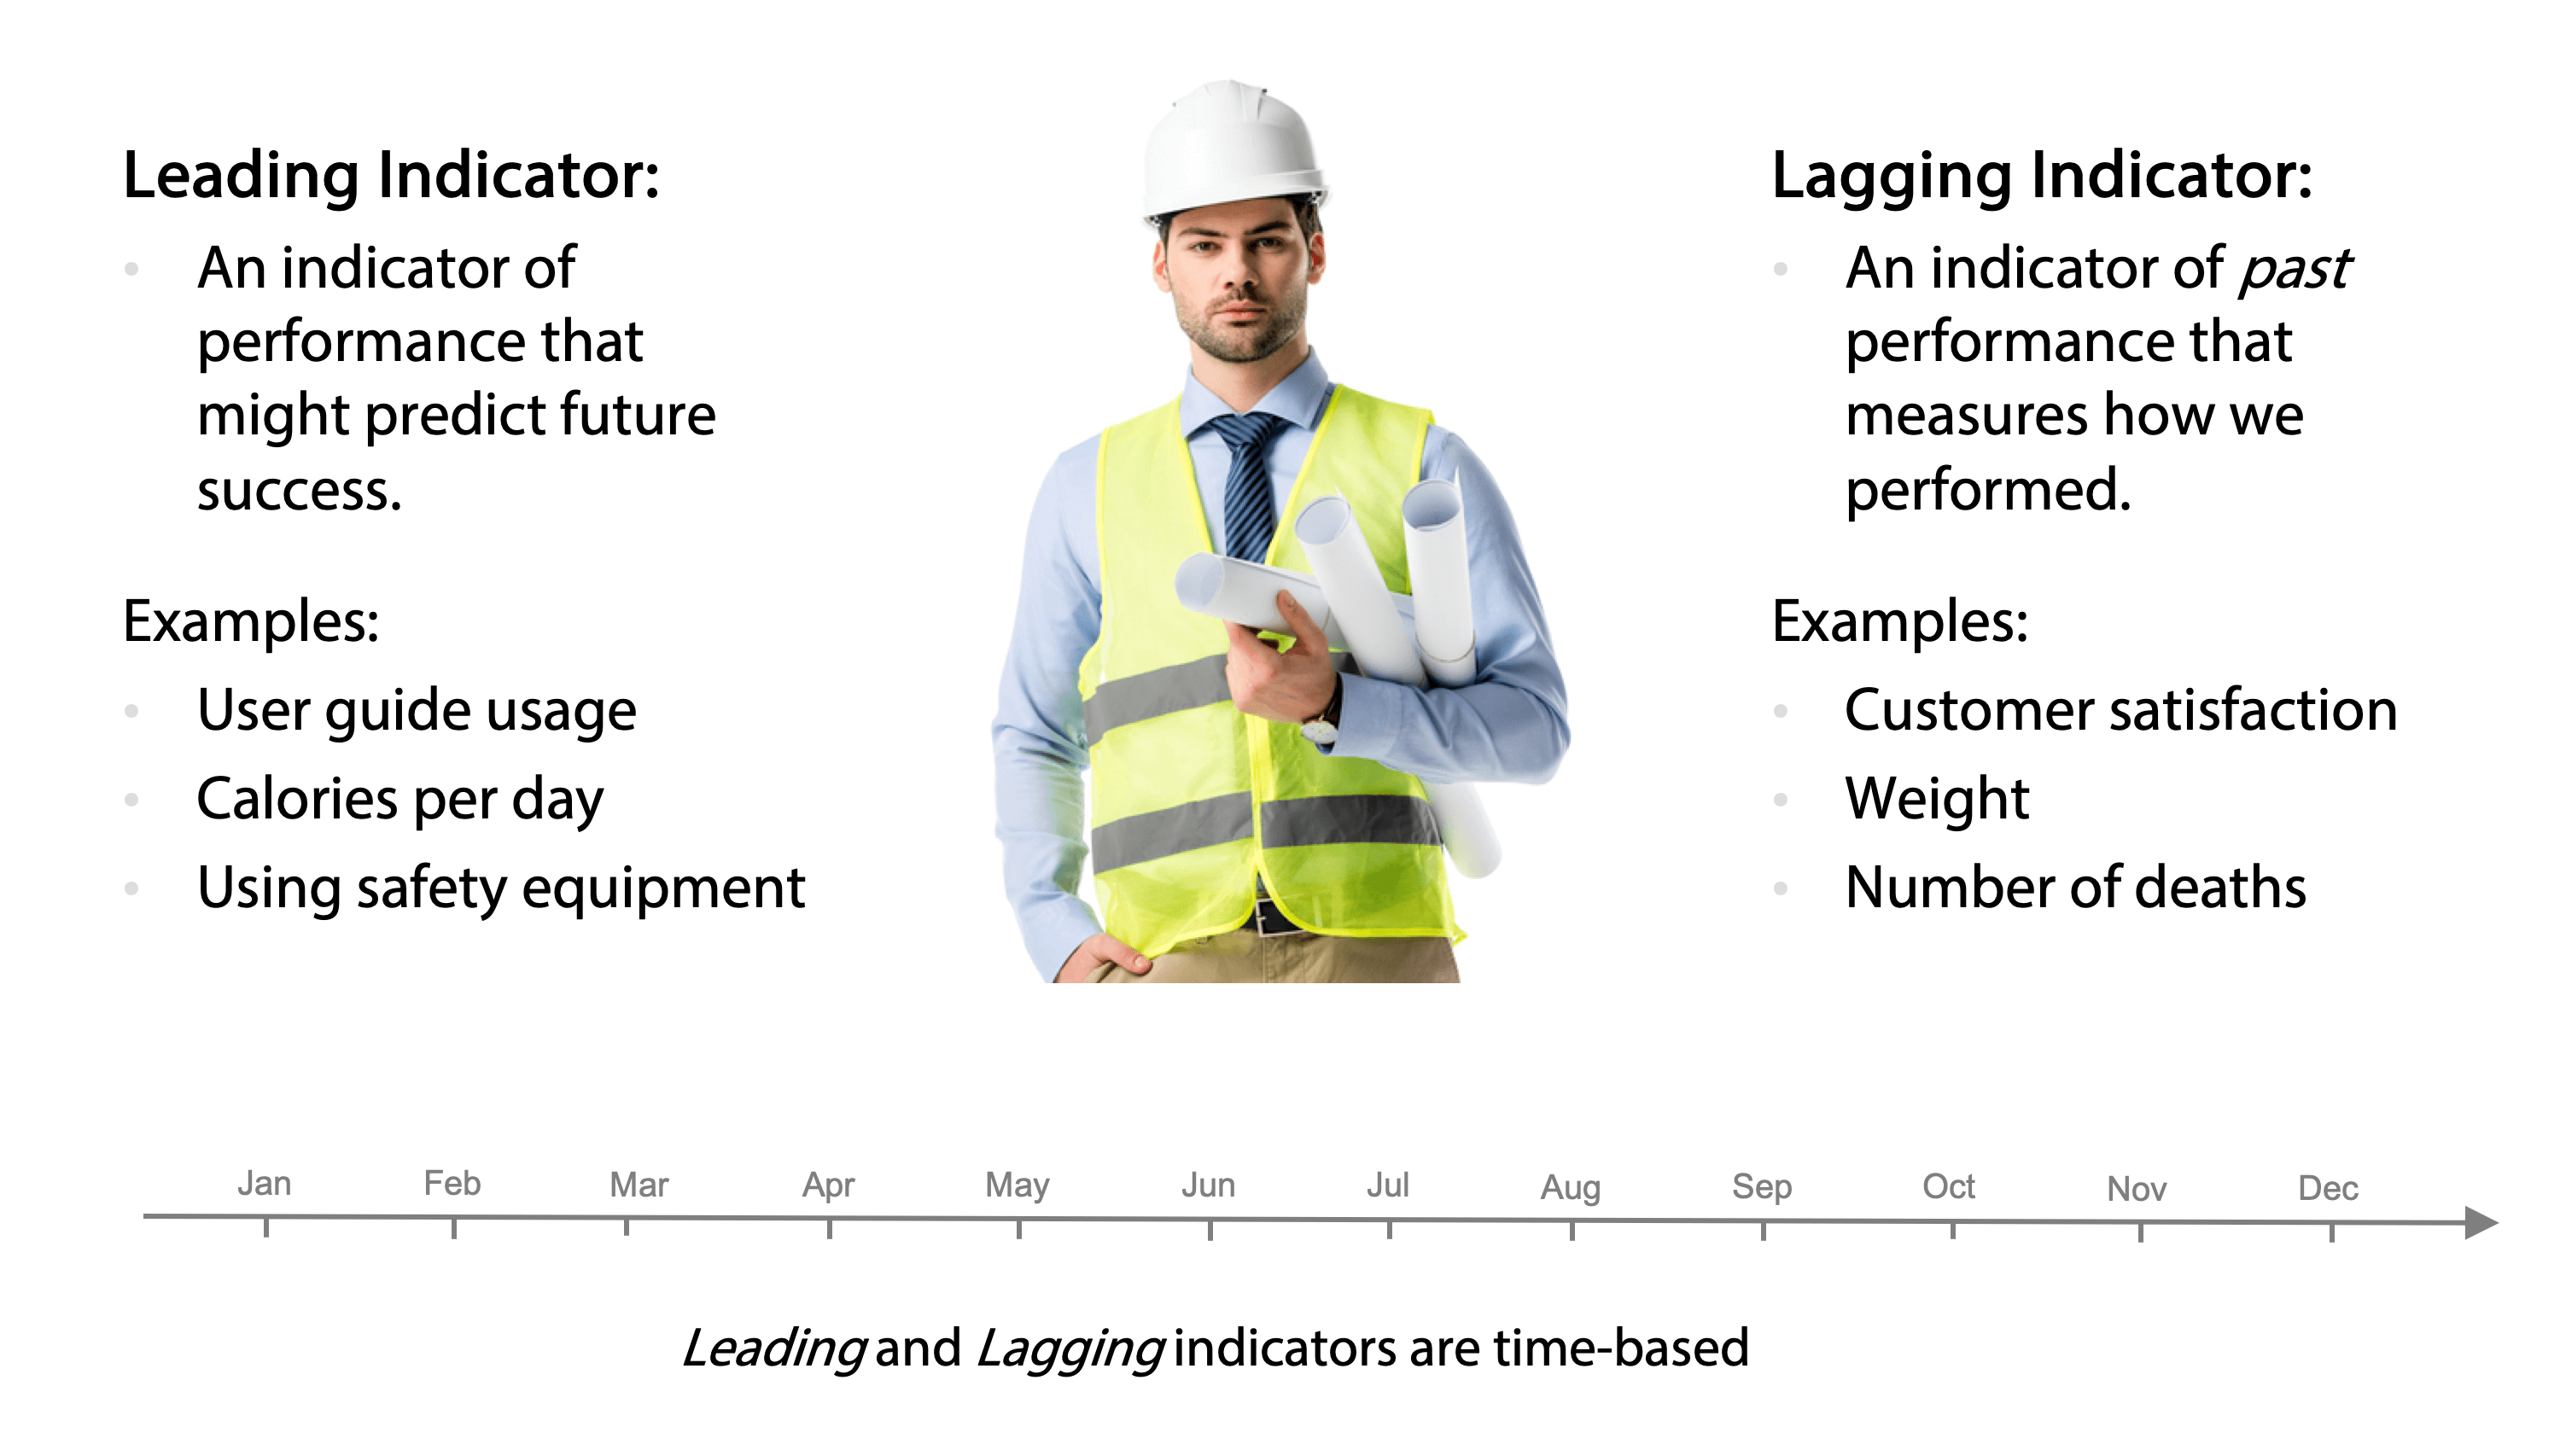 Lead and Lag Indicators | Intrafocus